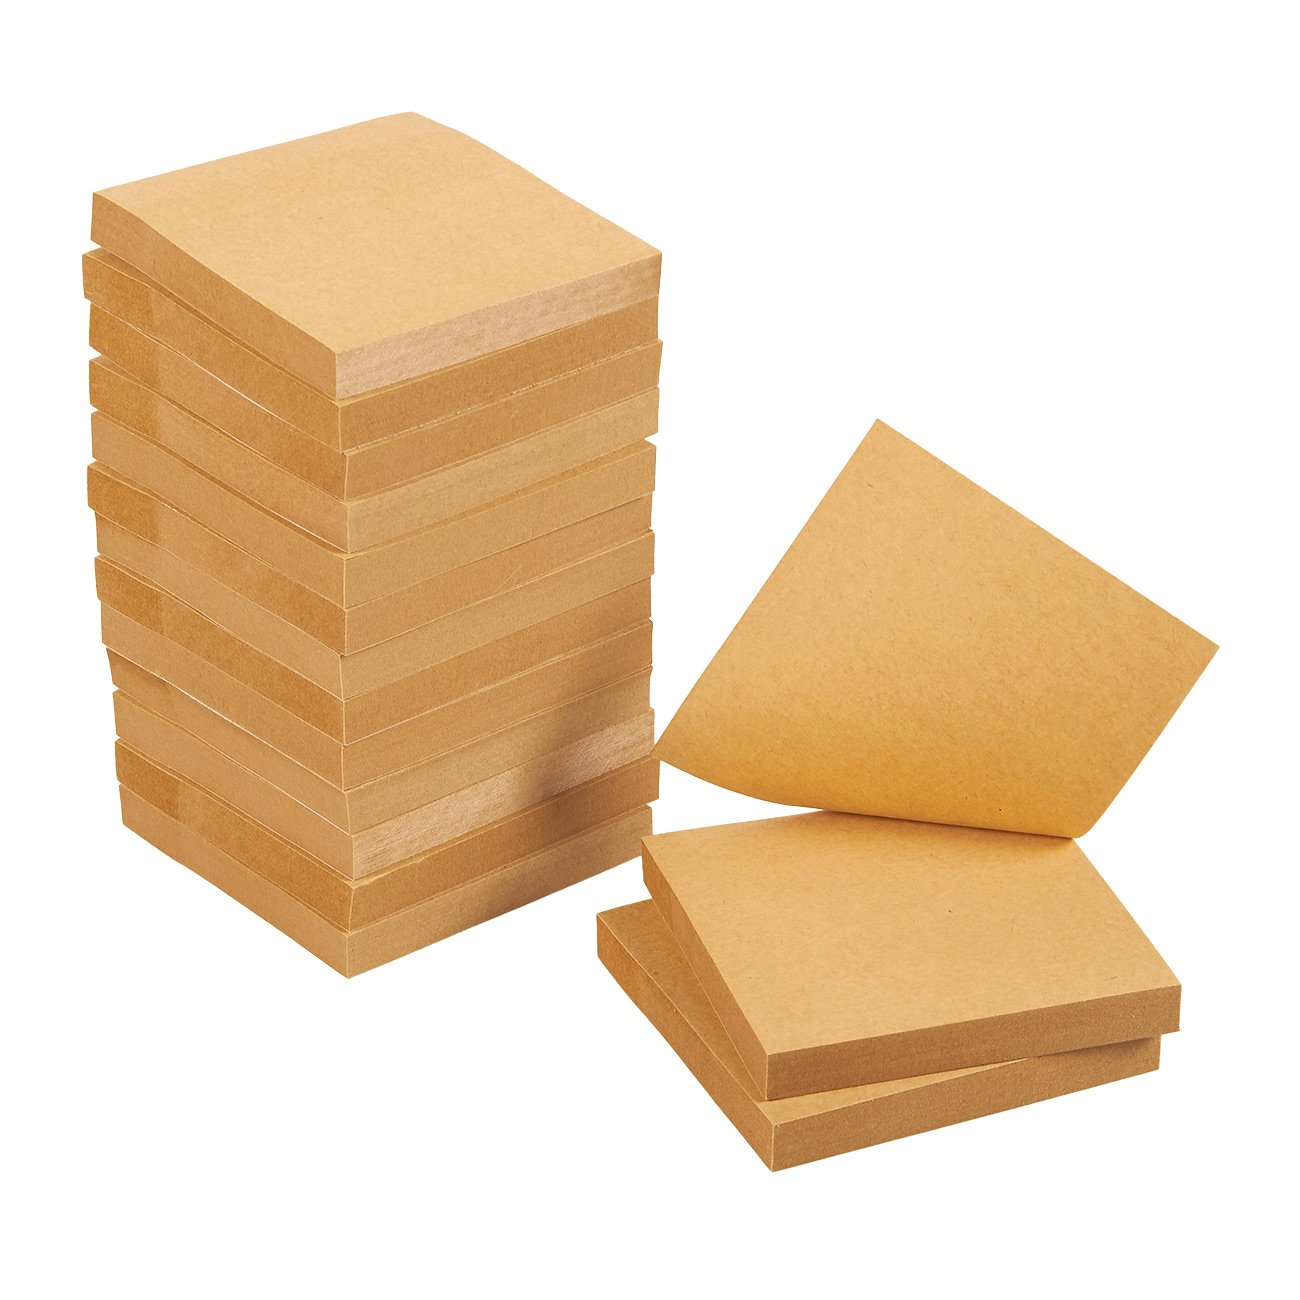 Sticky Notes - 15-Pads Self-Stick Note Pads, Memo, Post, Reminder for Students, Home, Desk, Office Supplies, Kraft Paper, 100 Sheets Per Pad, 3 x 3 Inches